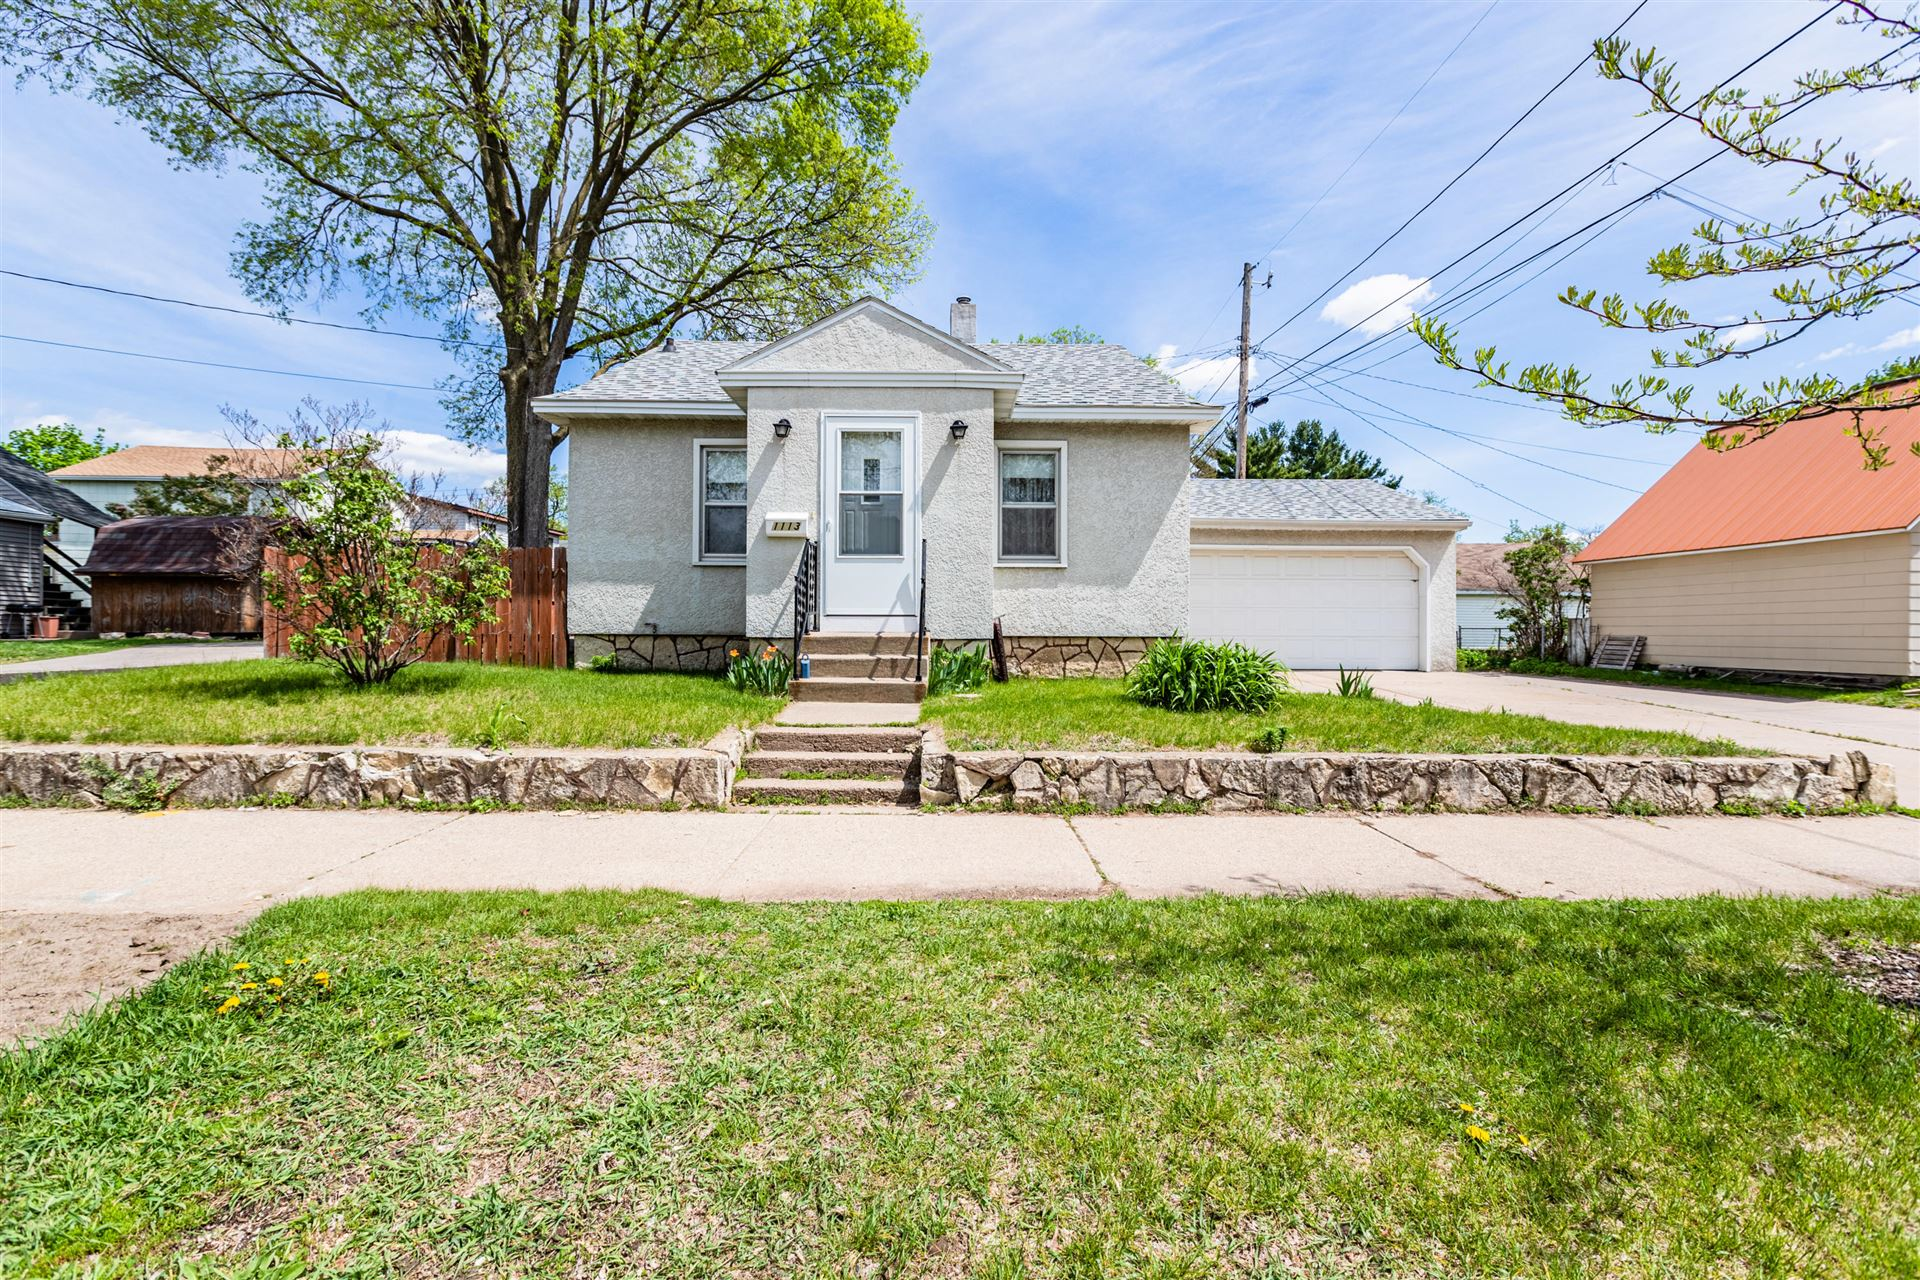 1113 16th St S, La Crosse, WI 54601 - MLS#: 1738891